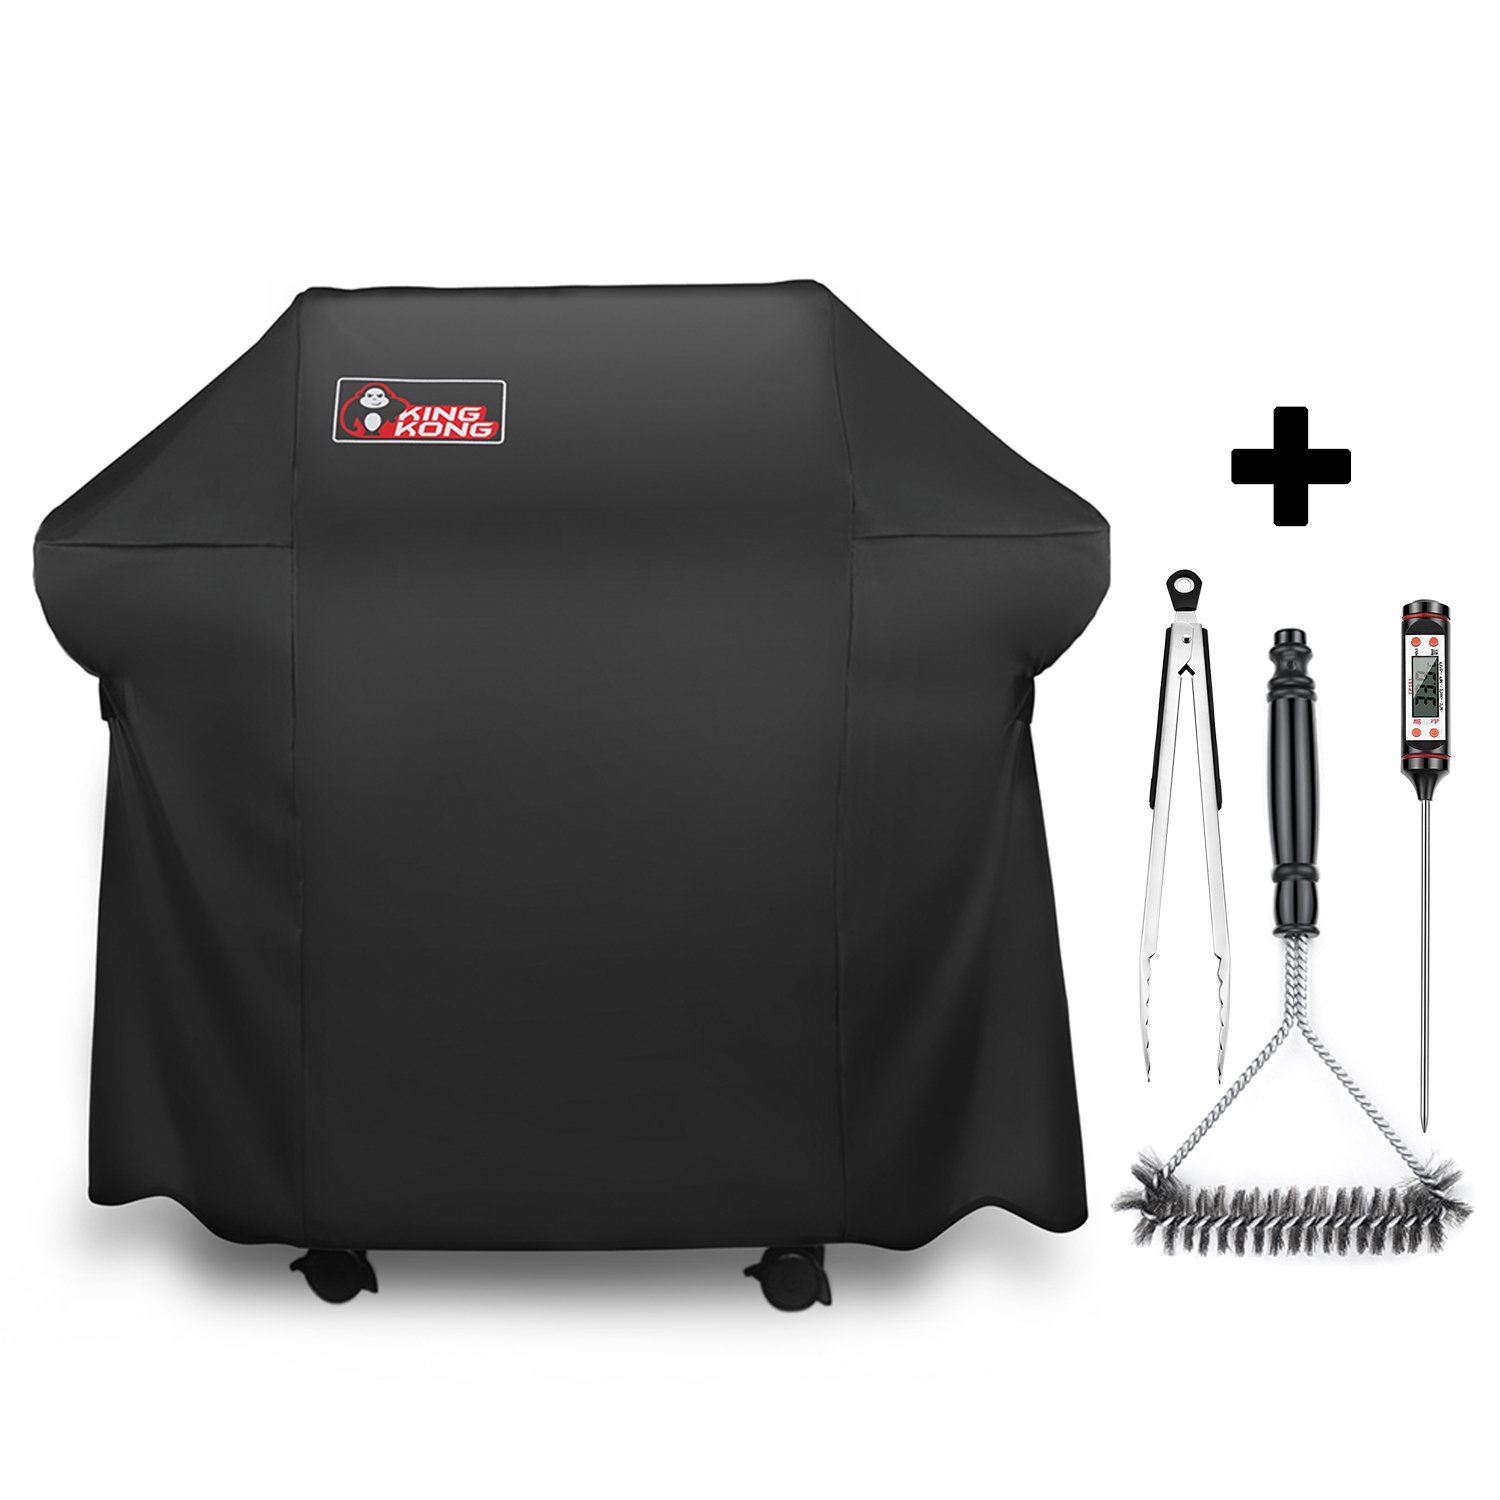 Kingkong Grill Cover 7106  Cover for Weber Spirit 200 and 300 Series Gas Grill Including Grill Brush,Tongs and Thermometer